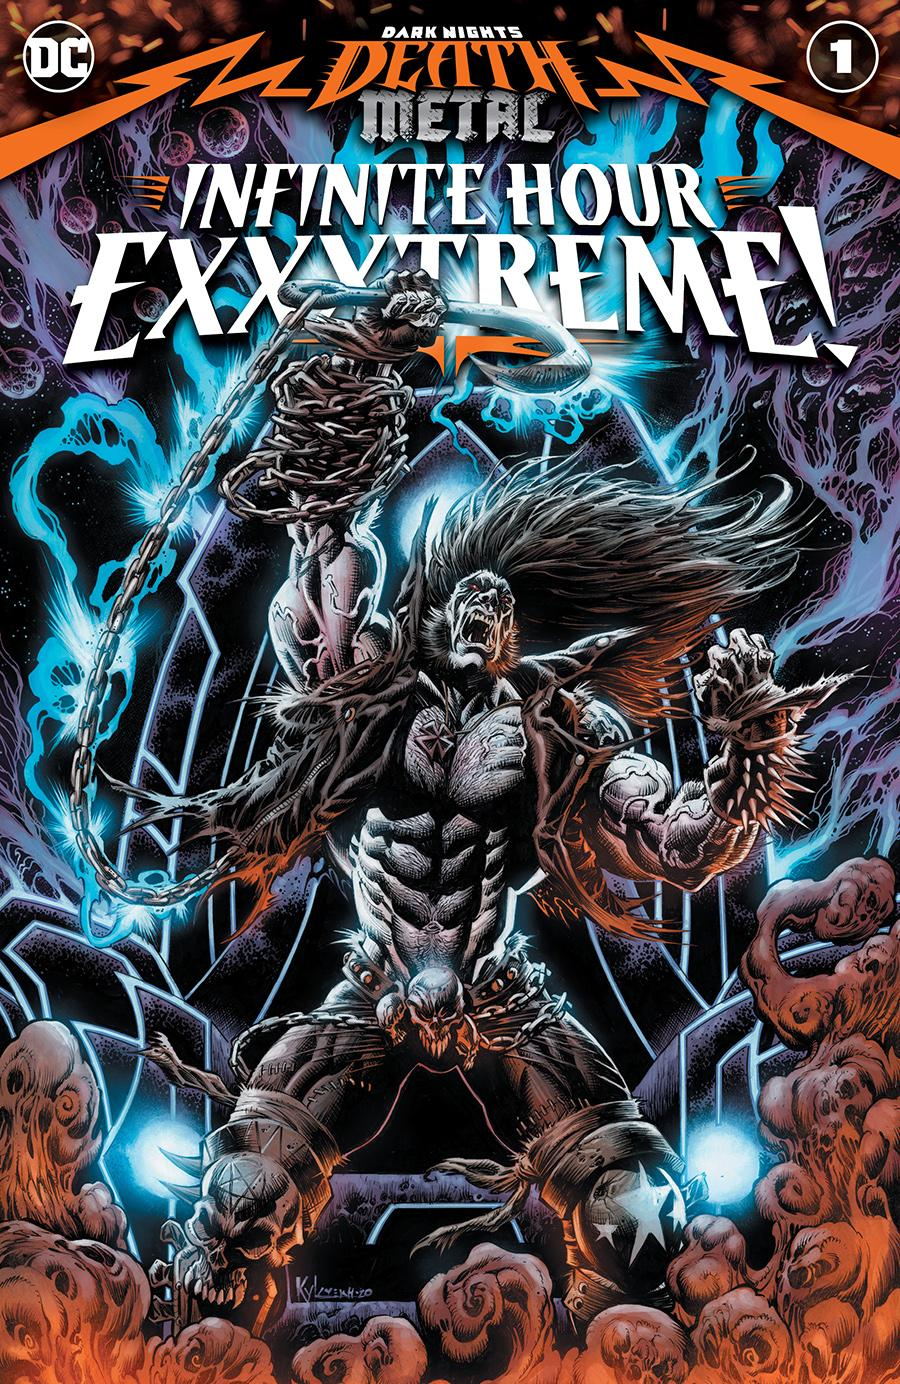 DARK NIGHTS DEATH METAL INFINITE HOUR EXXXTREME